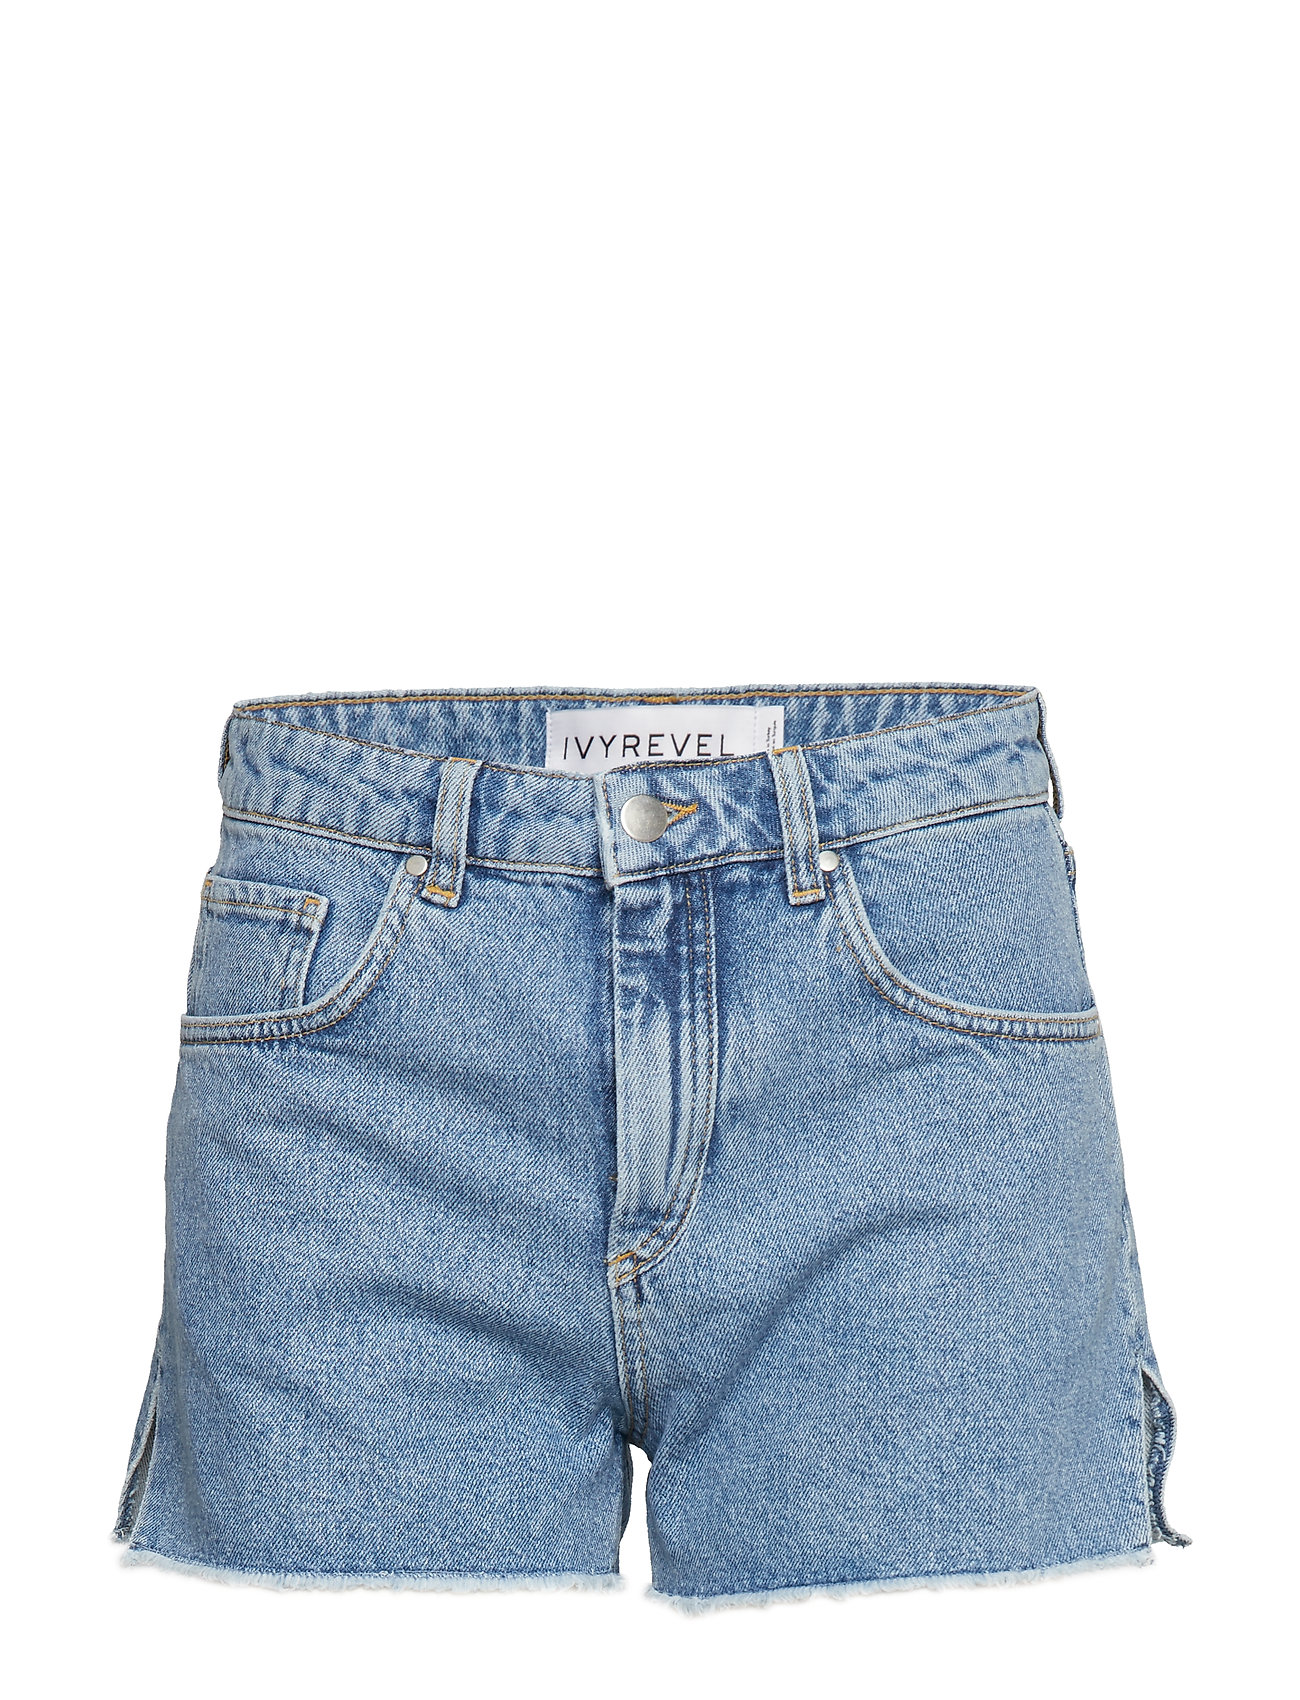 Ivyrevel Raw Edge Denim Shorts - BLUE